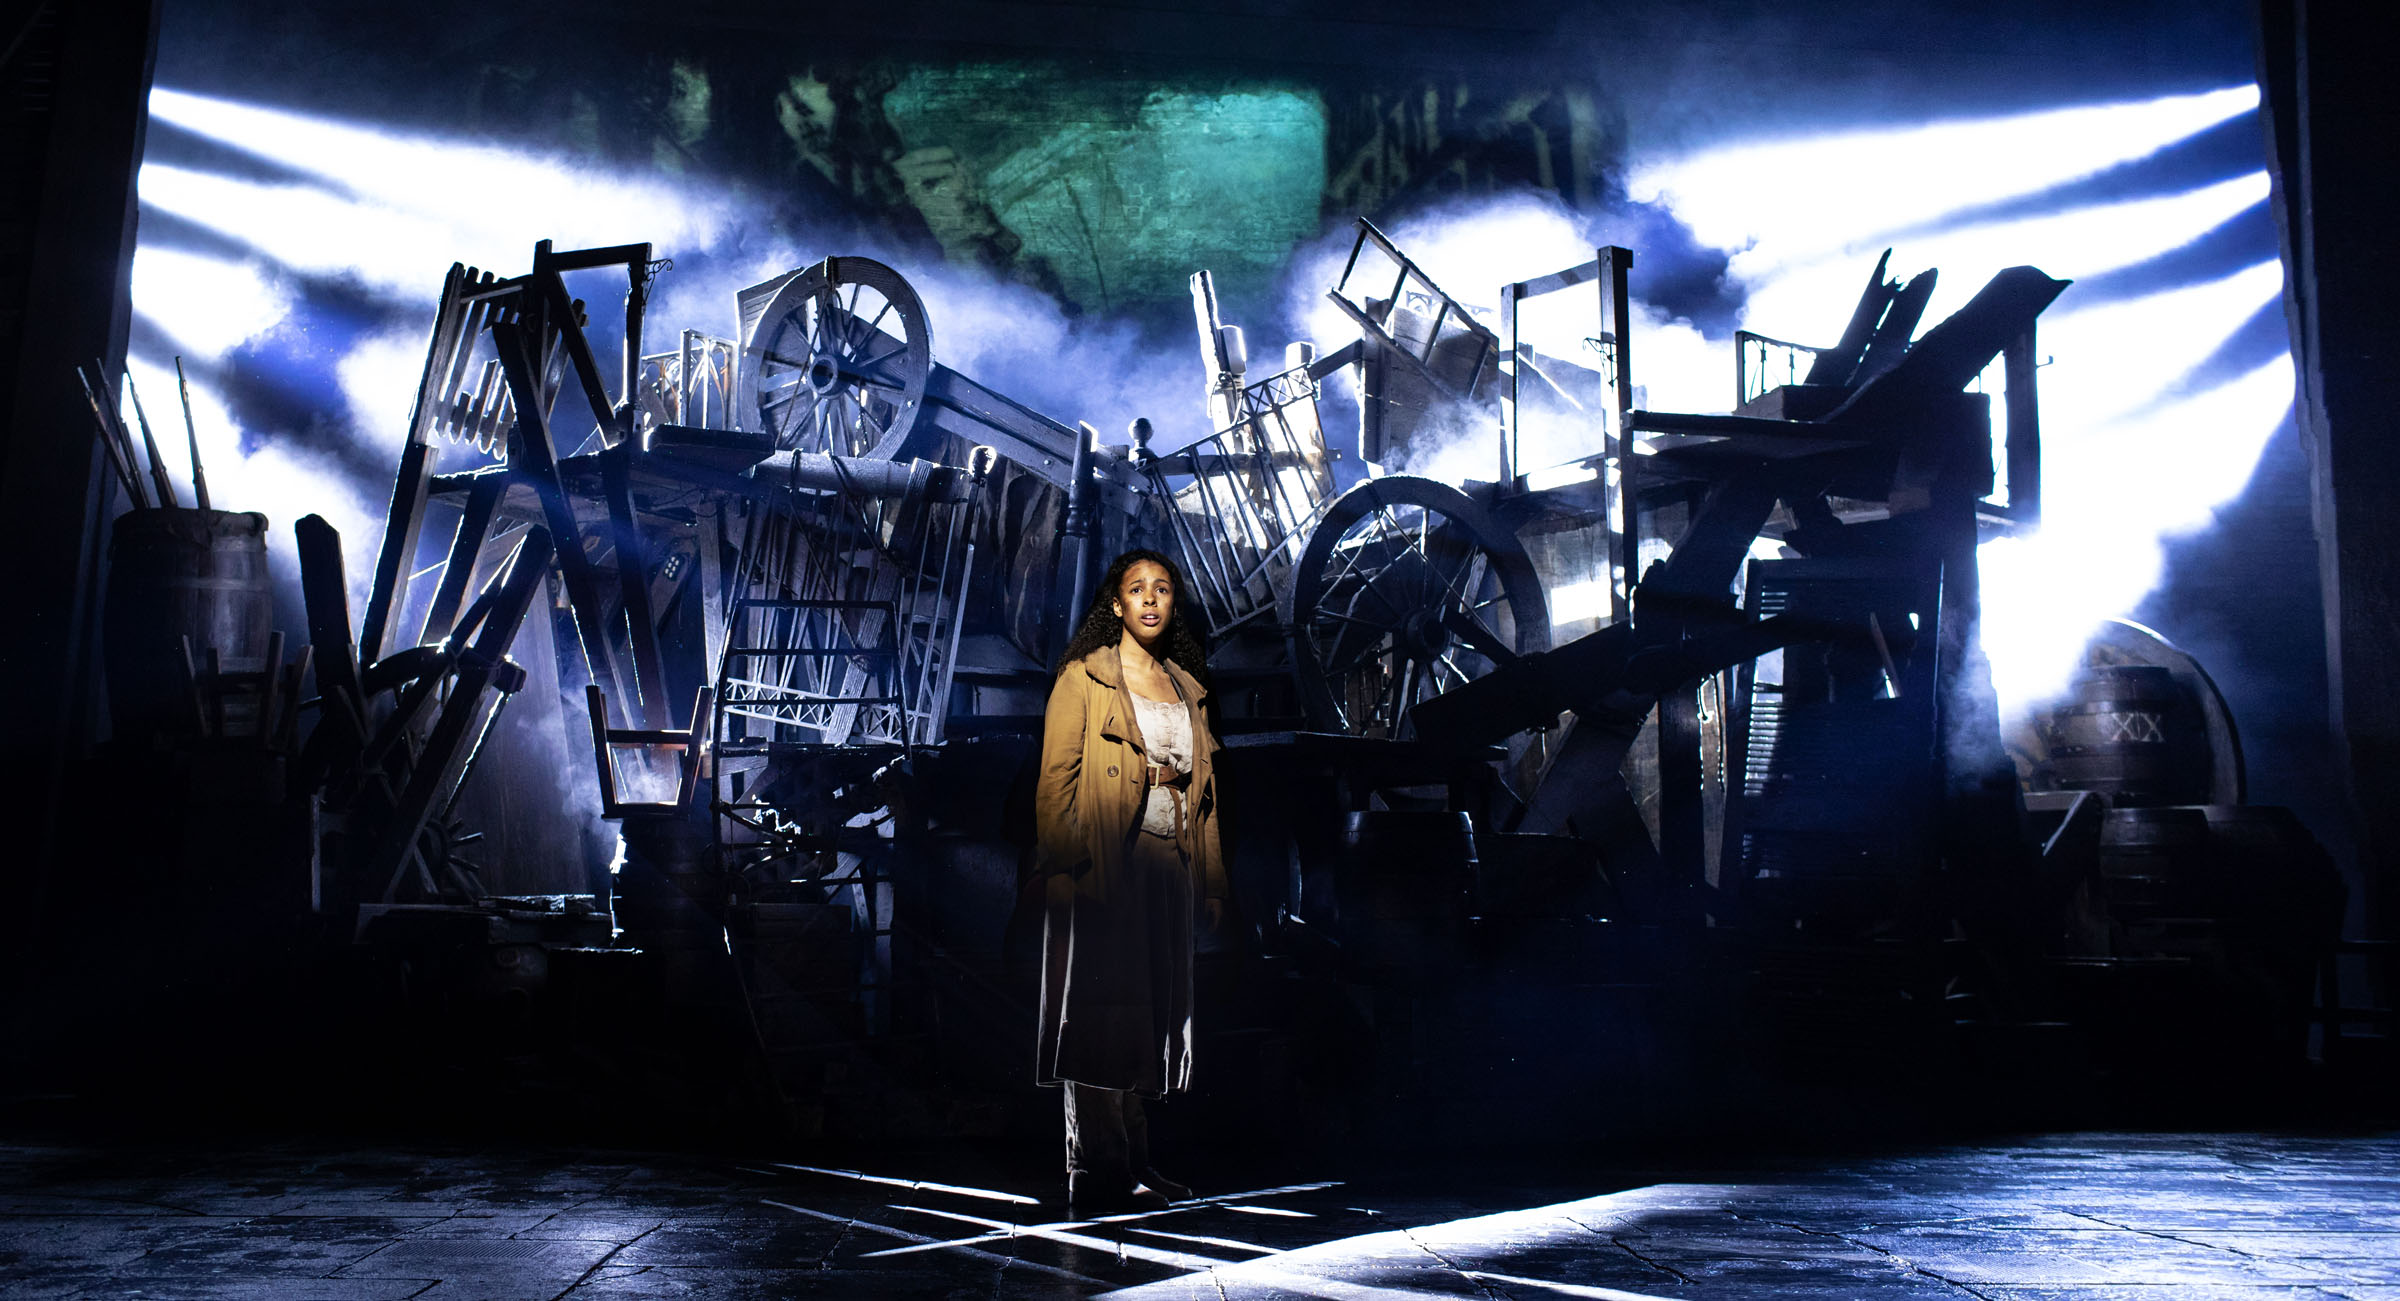 Tegan Bannister as Eponine in Les Misérables by Helen Maybanks